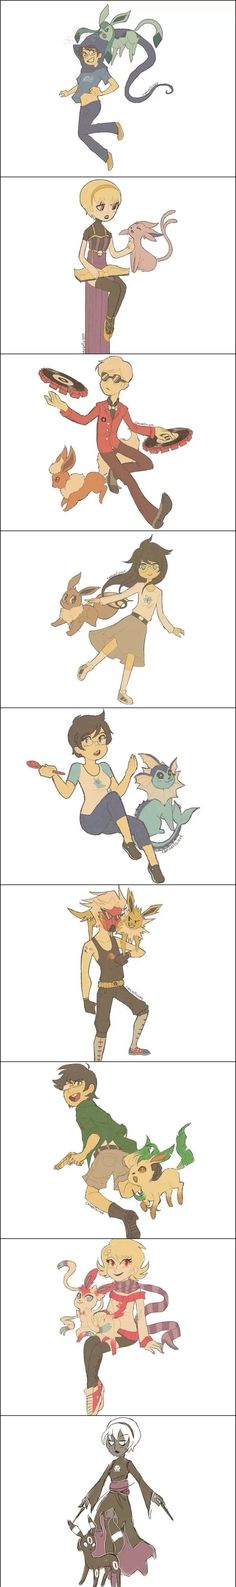 Homestuck beta and alpha kids and their eeveelutions. ^w^